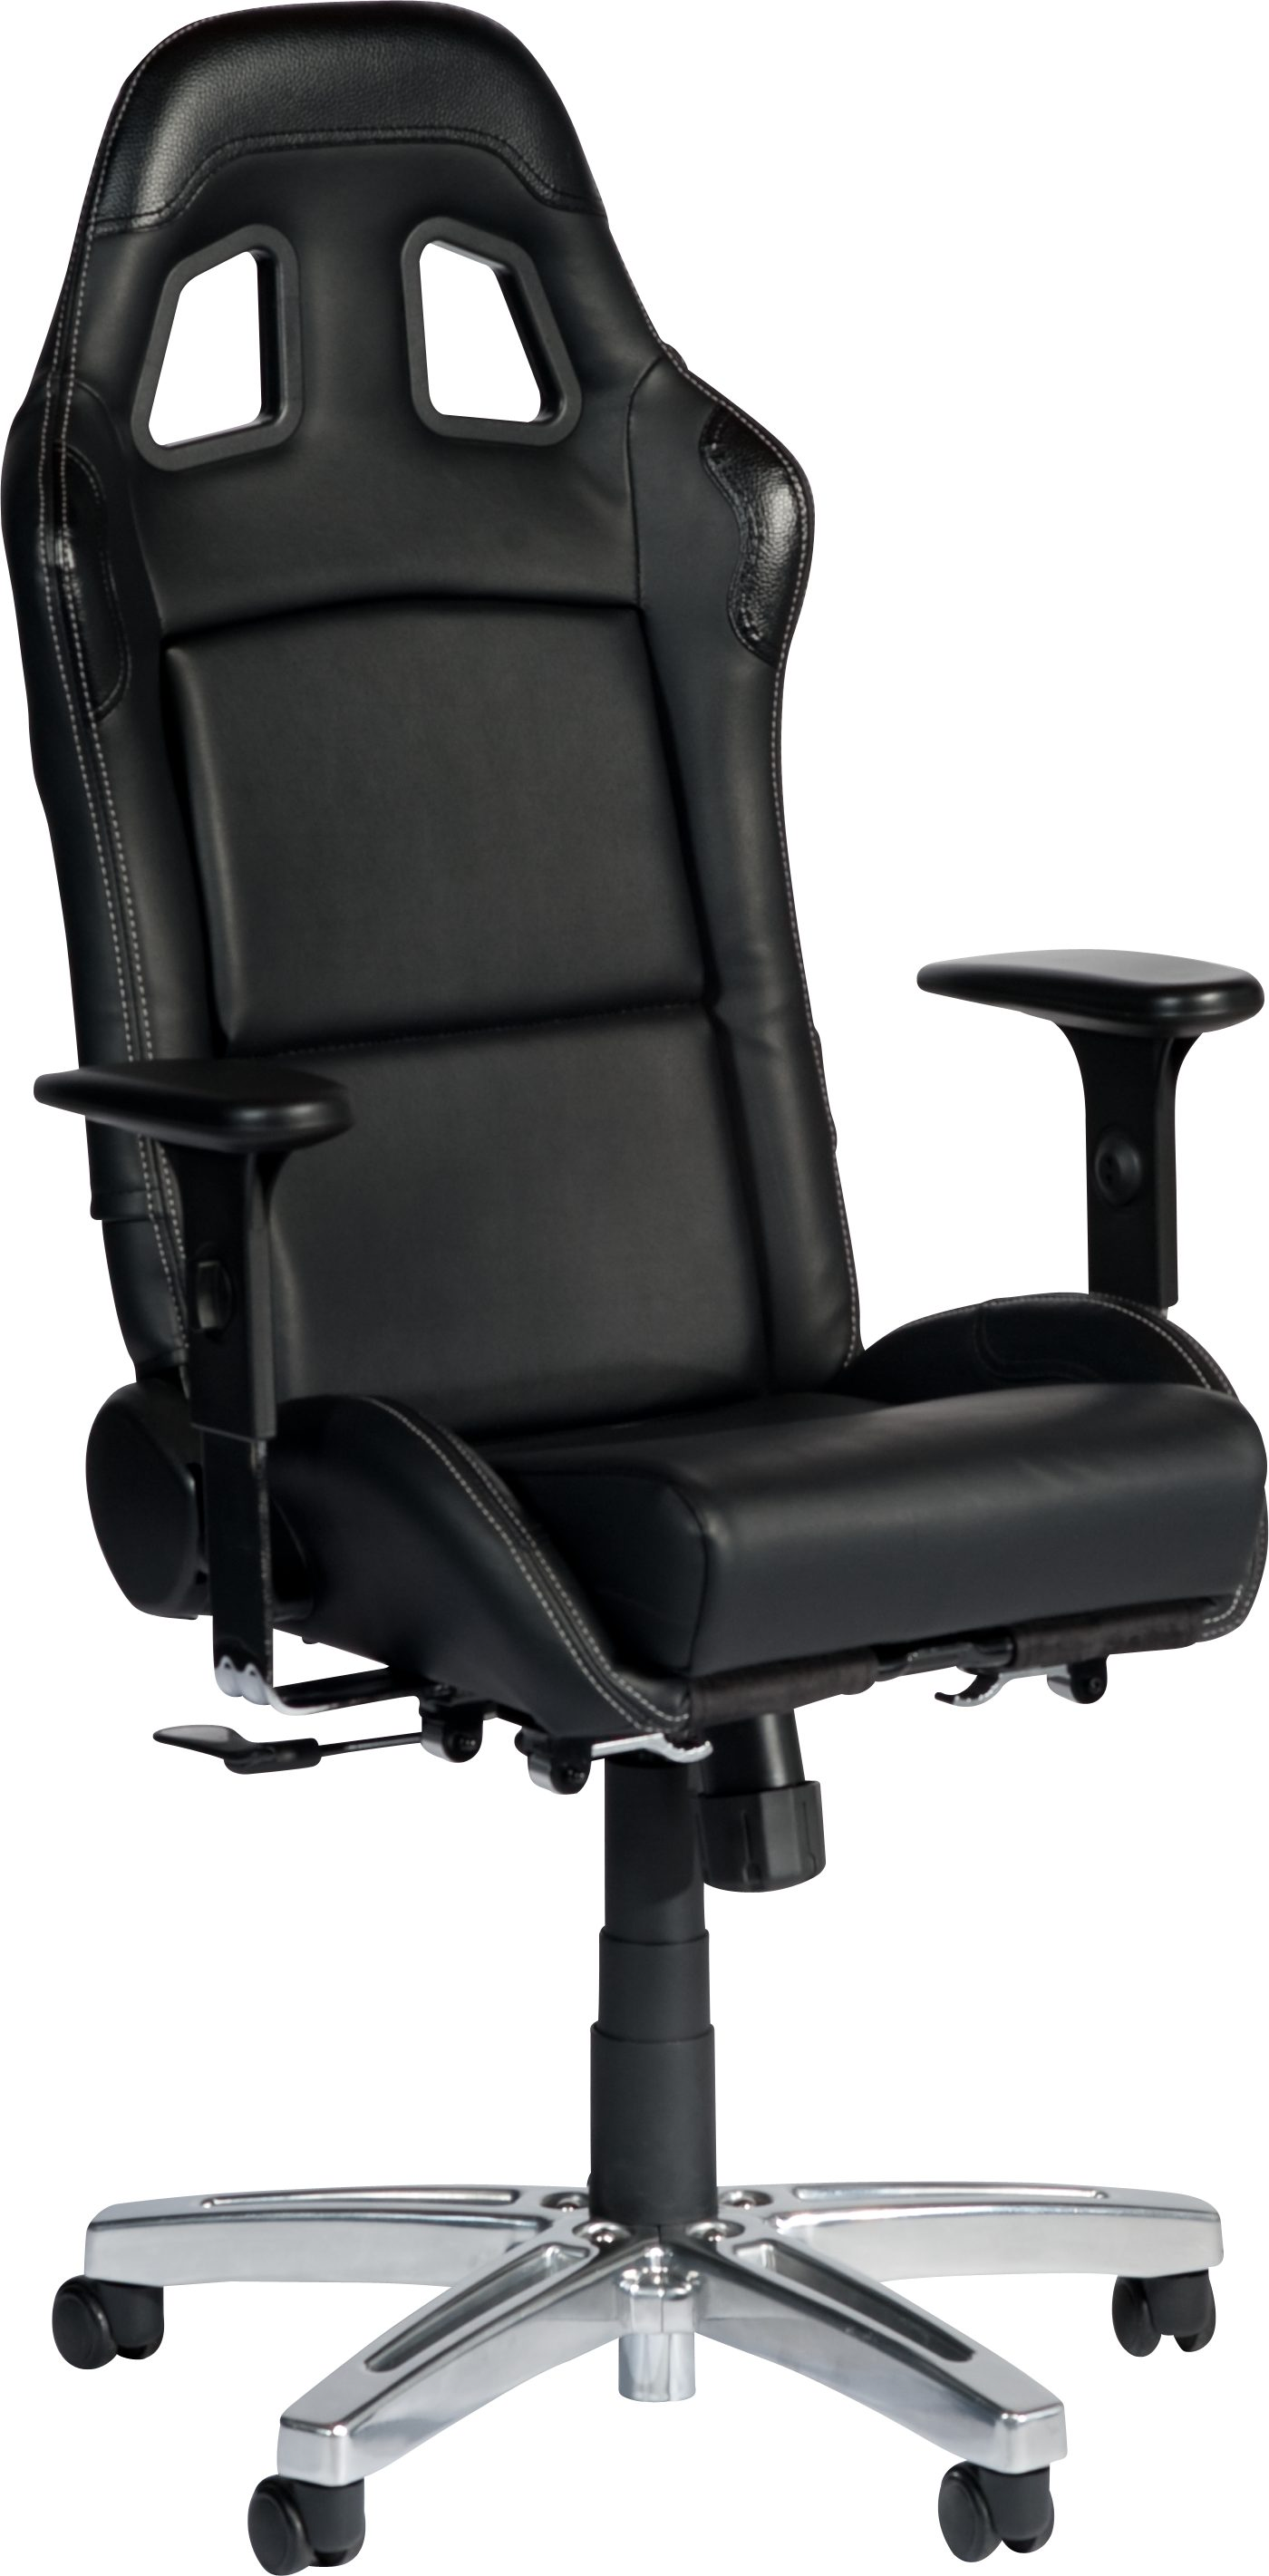 Playseats Playseat Office Sitz Schwarz »(PS3 PS4 PC X360 XBox One)«